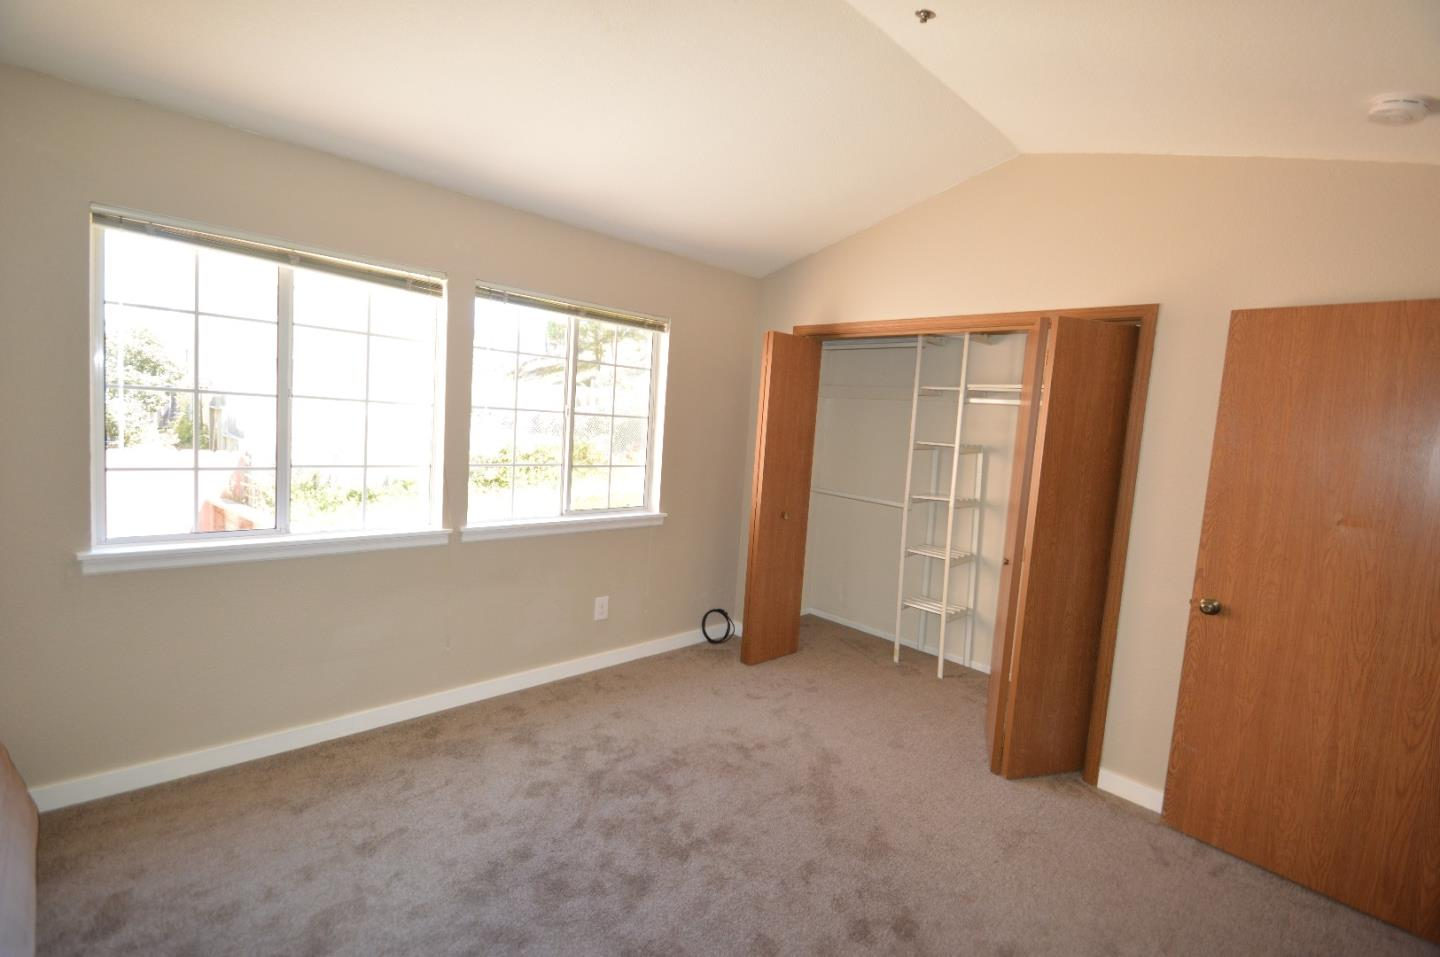 1002 San Antonio Circle Unit 25 Daly City, CA 94014 - MLS #: ML81717877